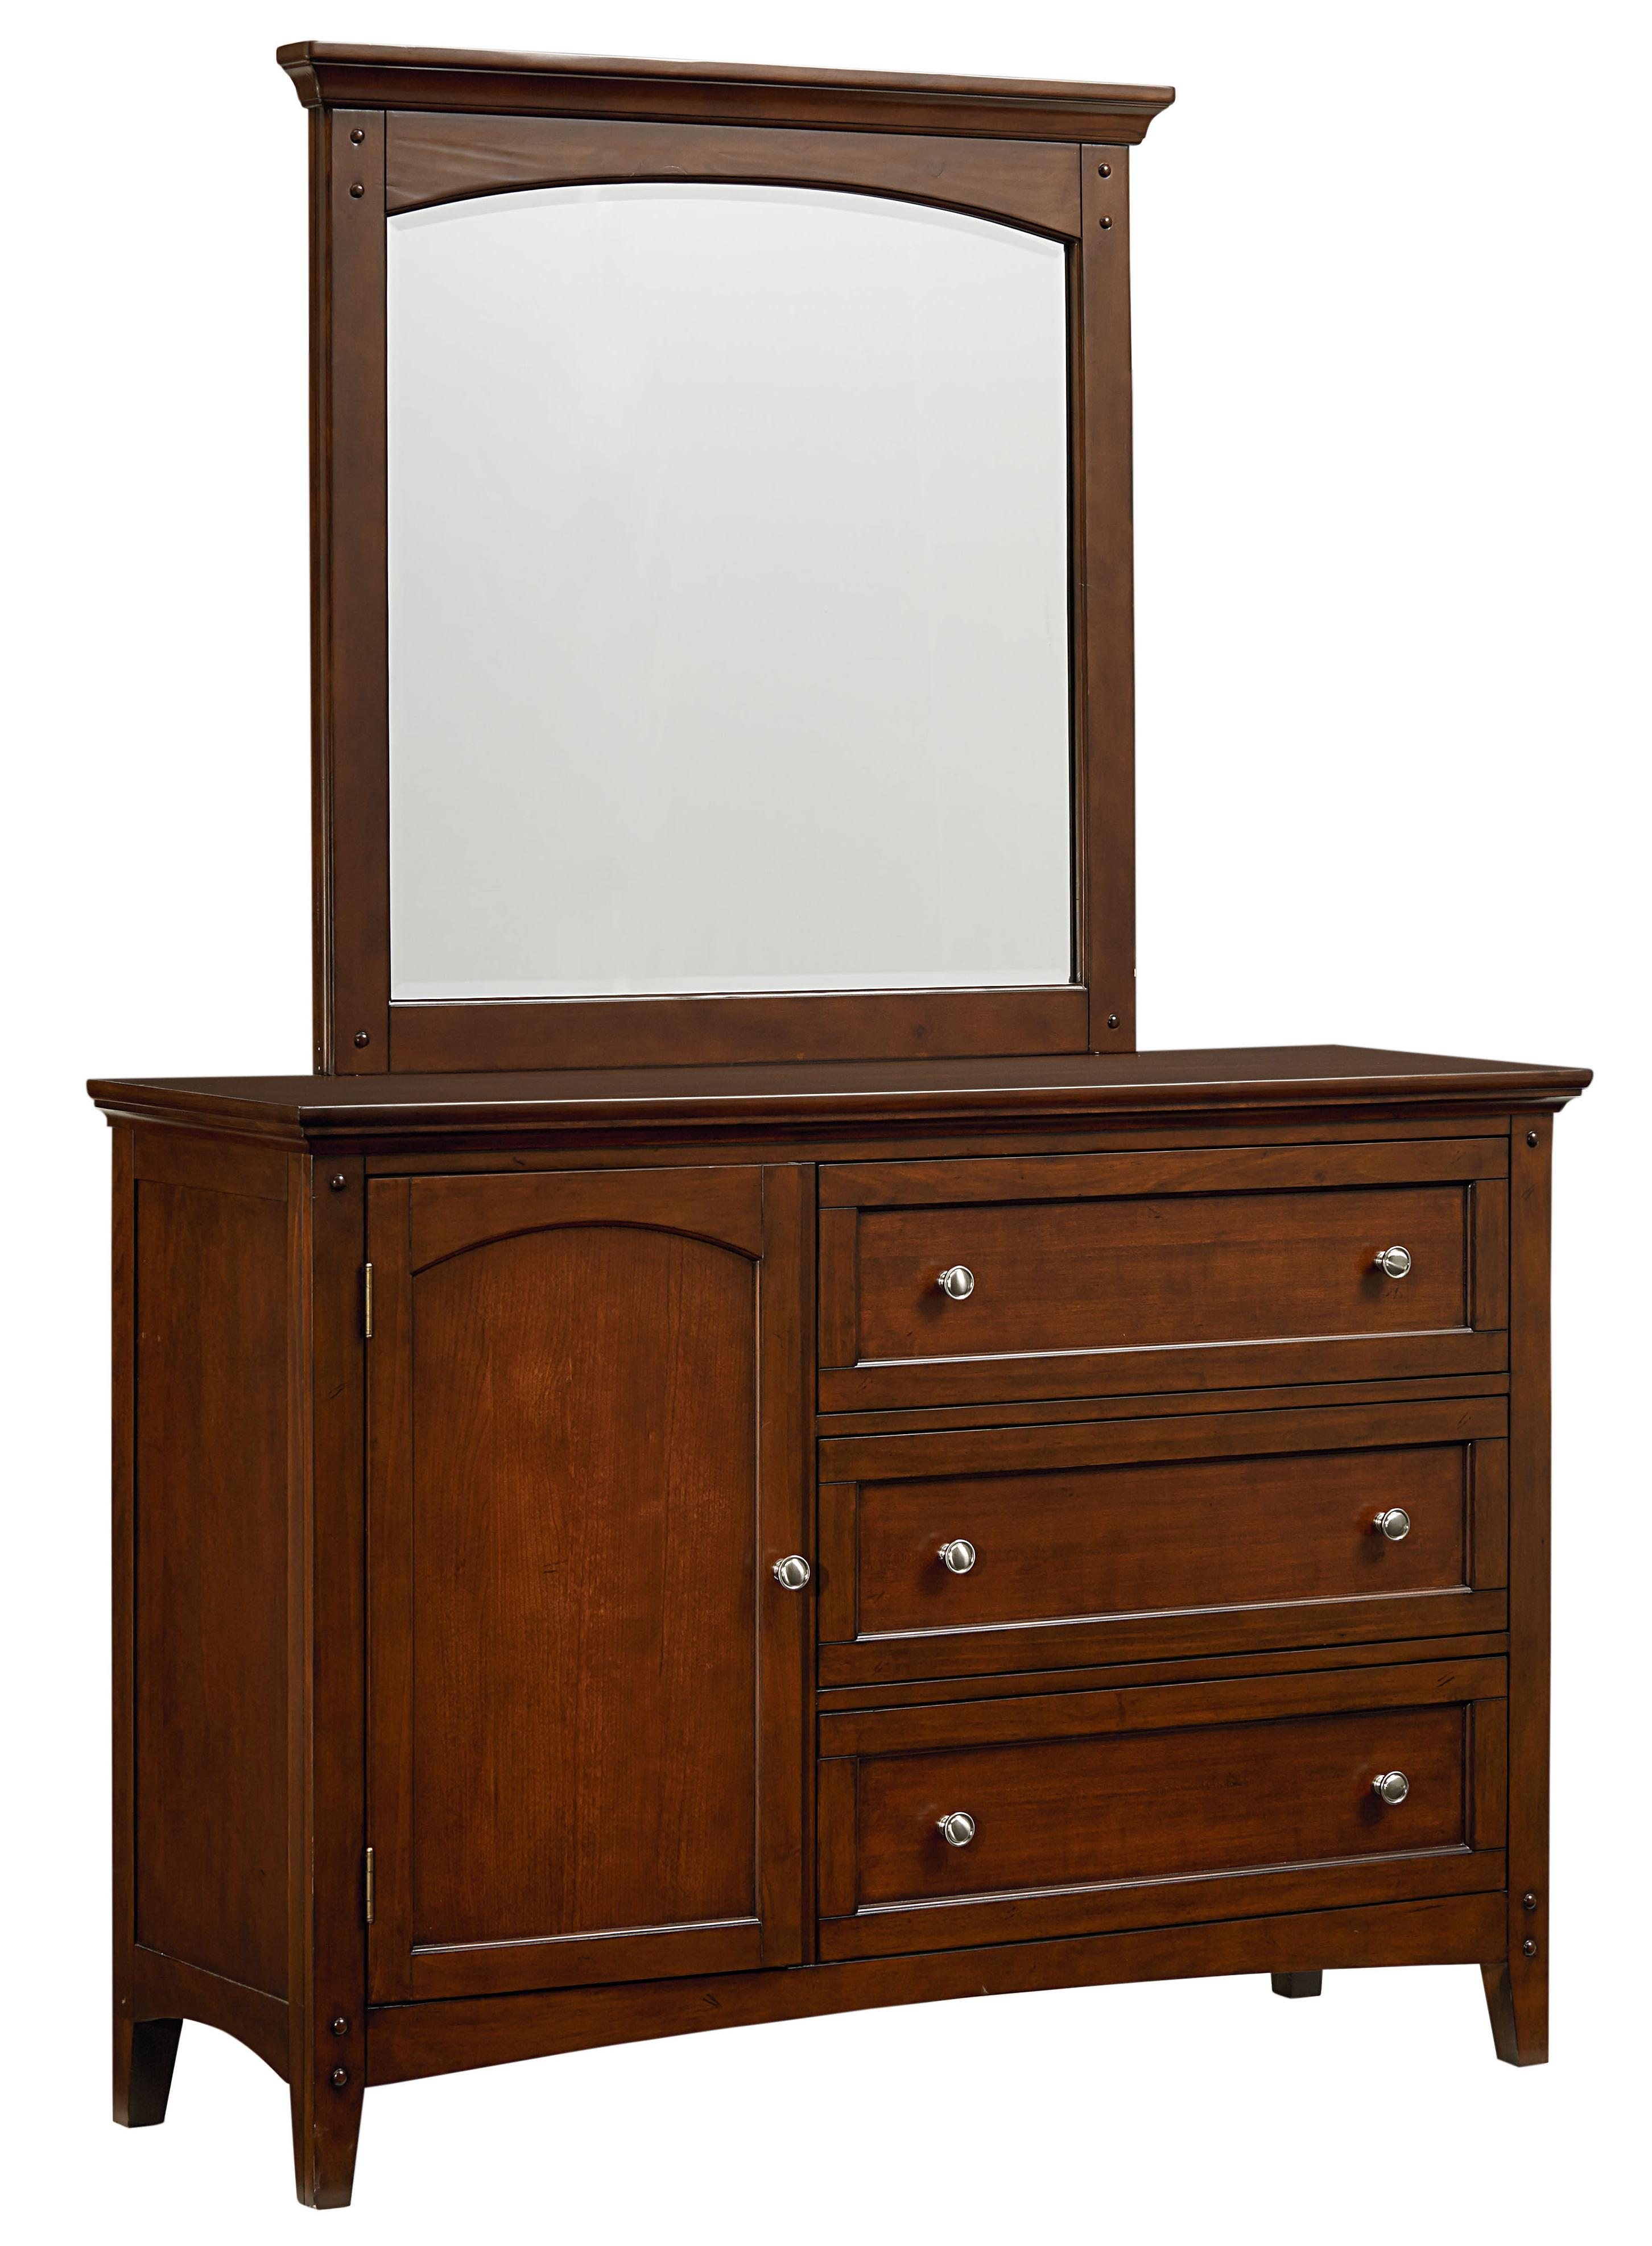 Standard Furniture Cooperstown Youth Dresser and Mirror - Item Number: 93849+18